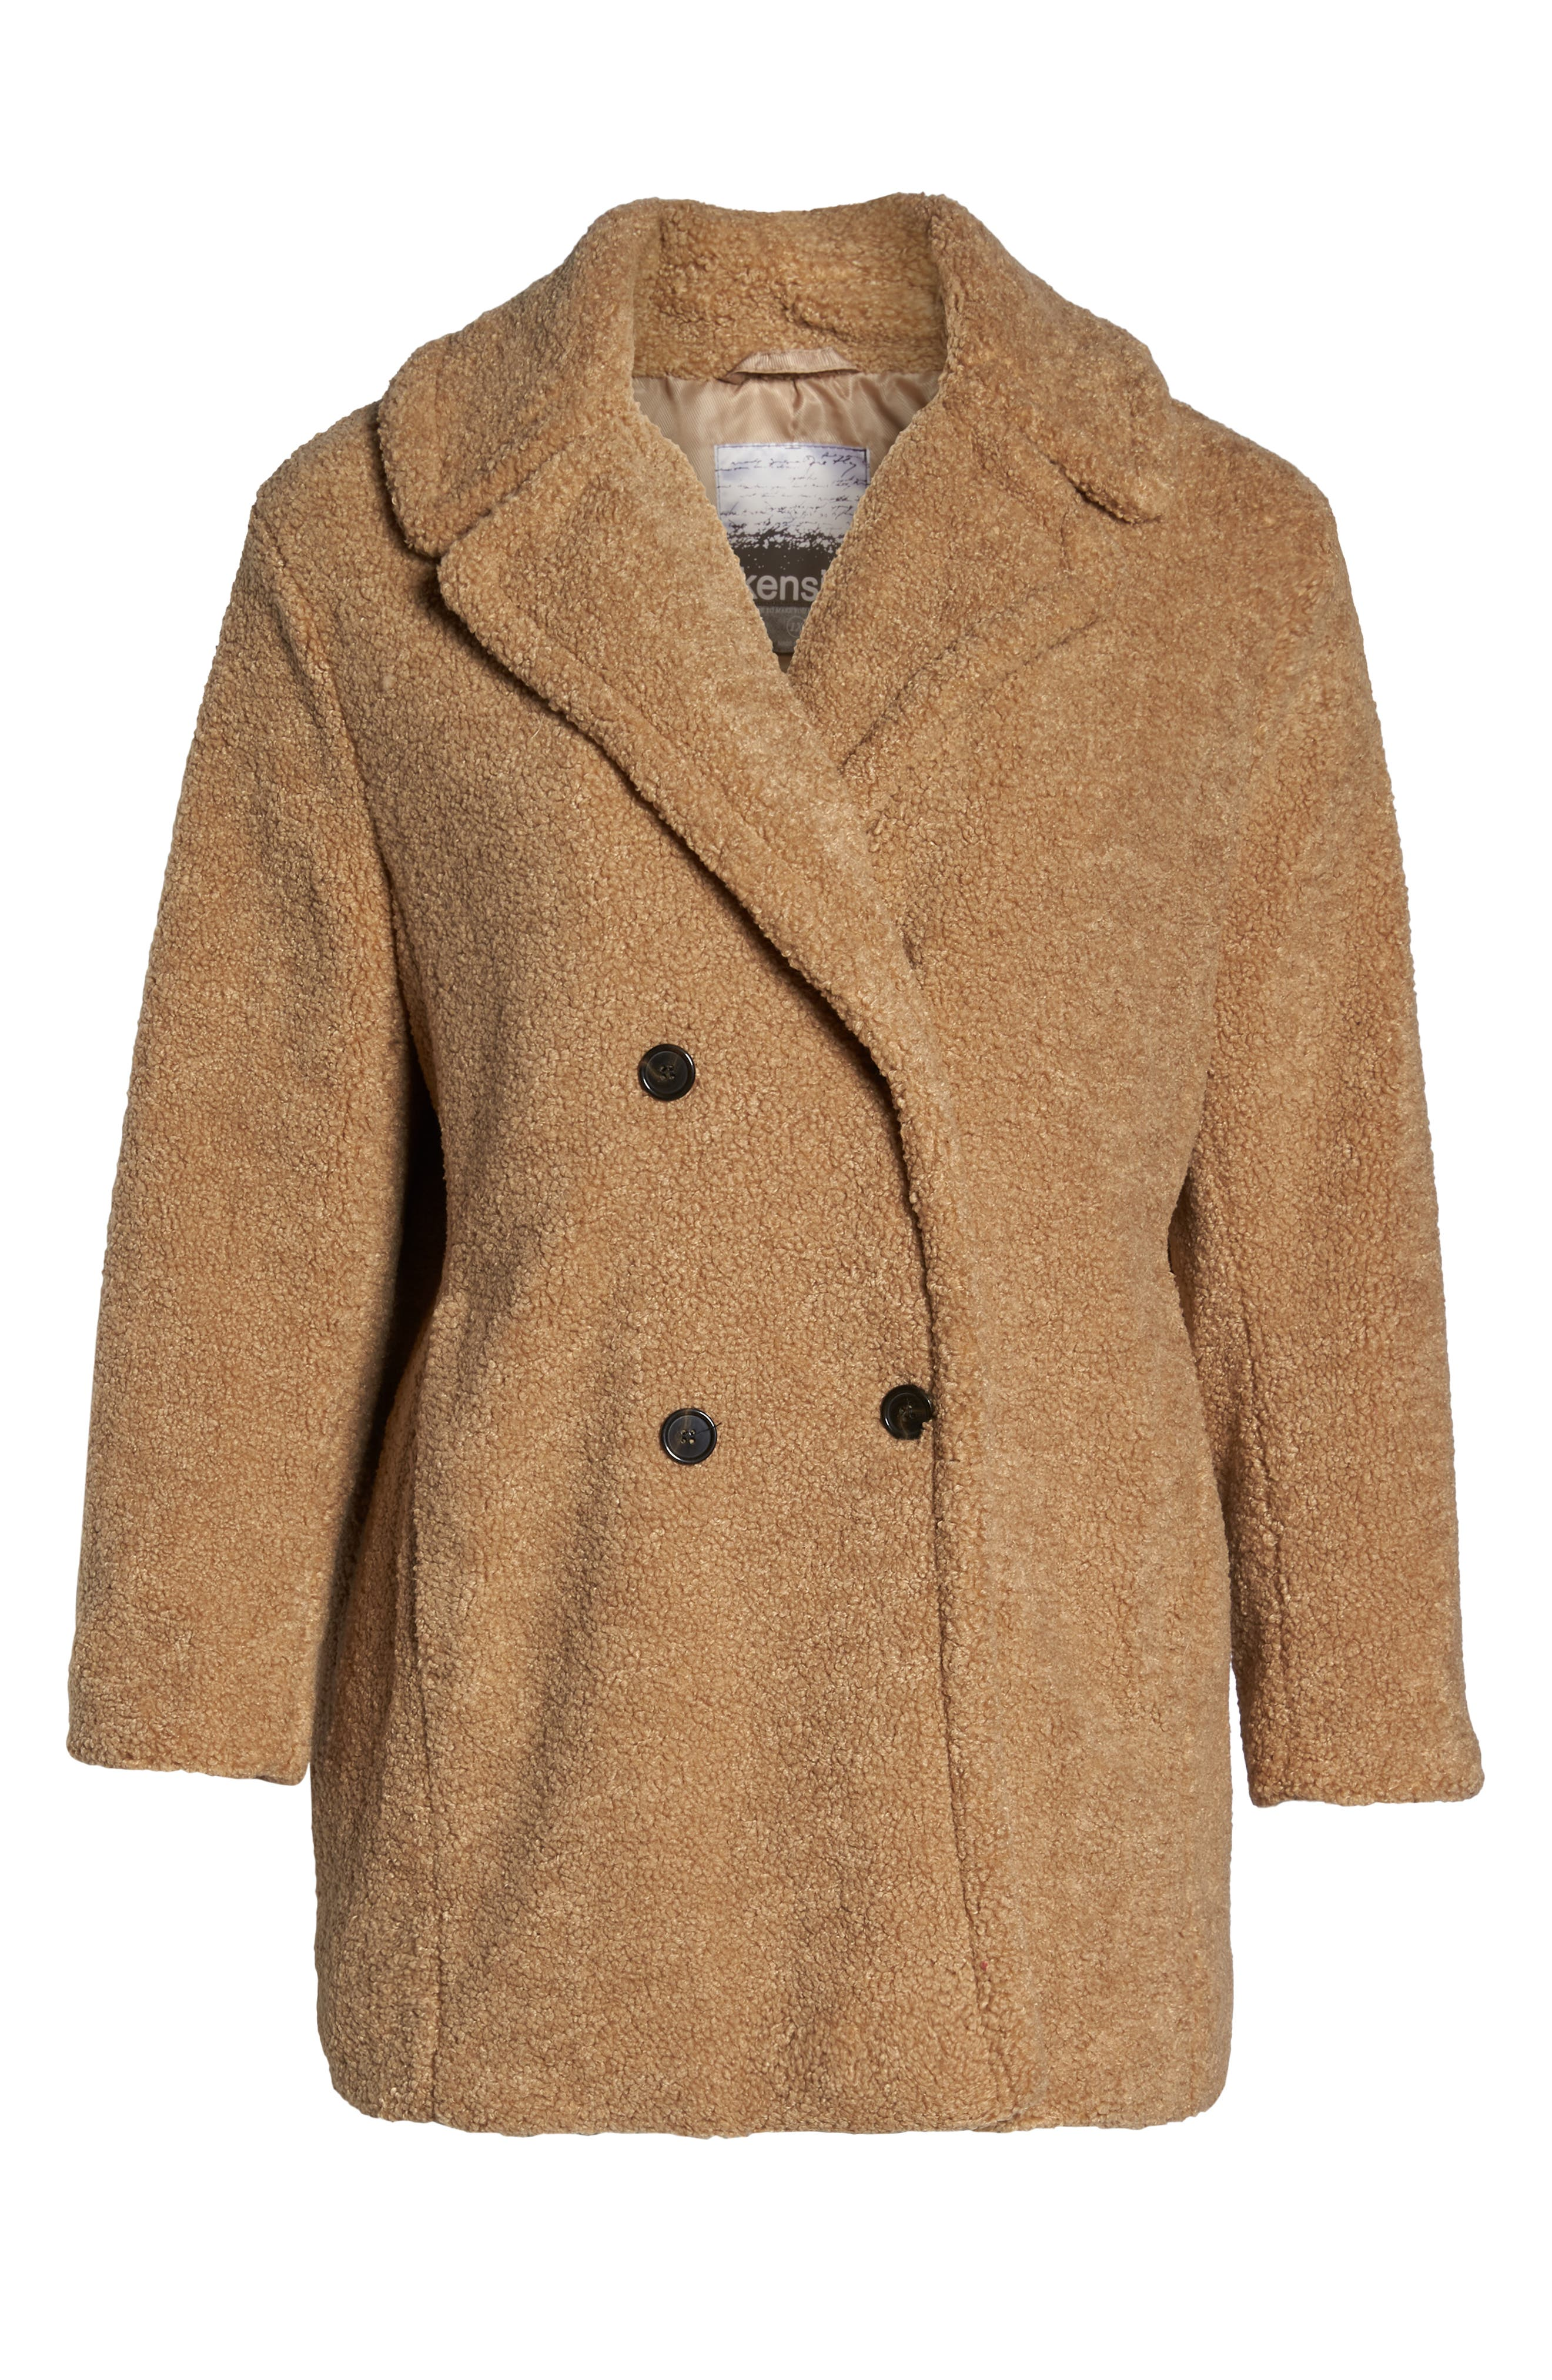 KENSIE,                             Teddy Bear Notch Collar Faux Fur Coat,                             Alternate thumbnail 6, color,                             788